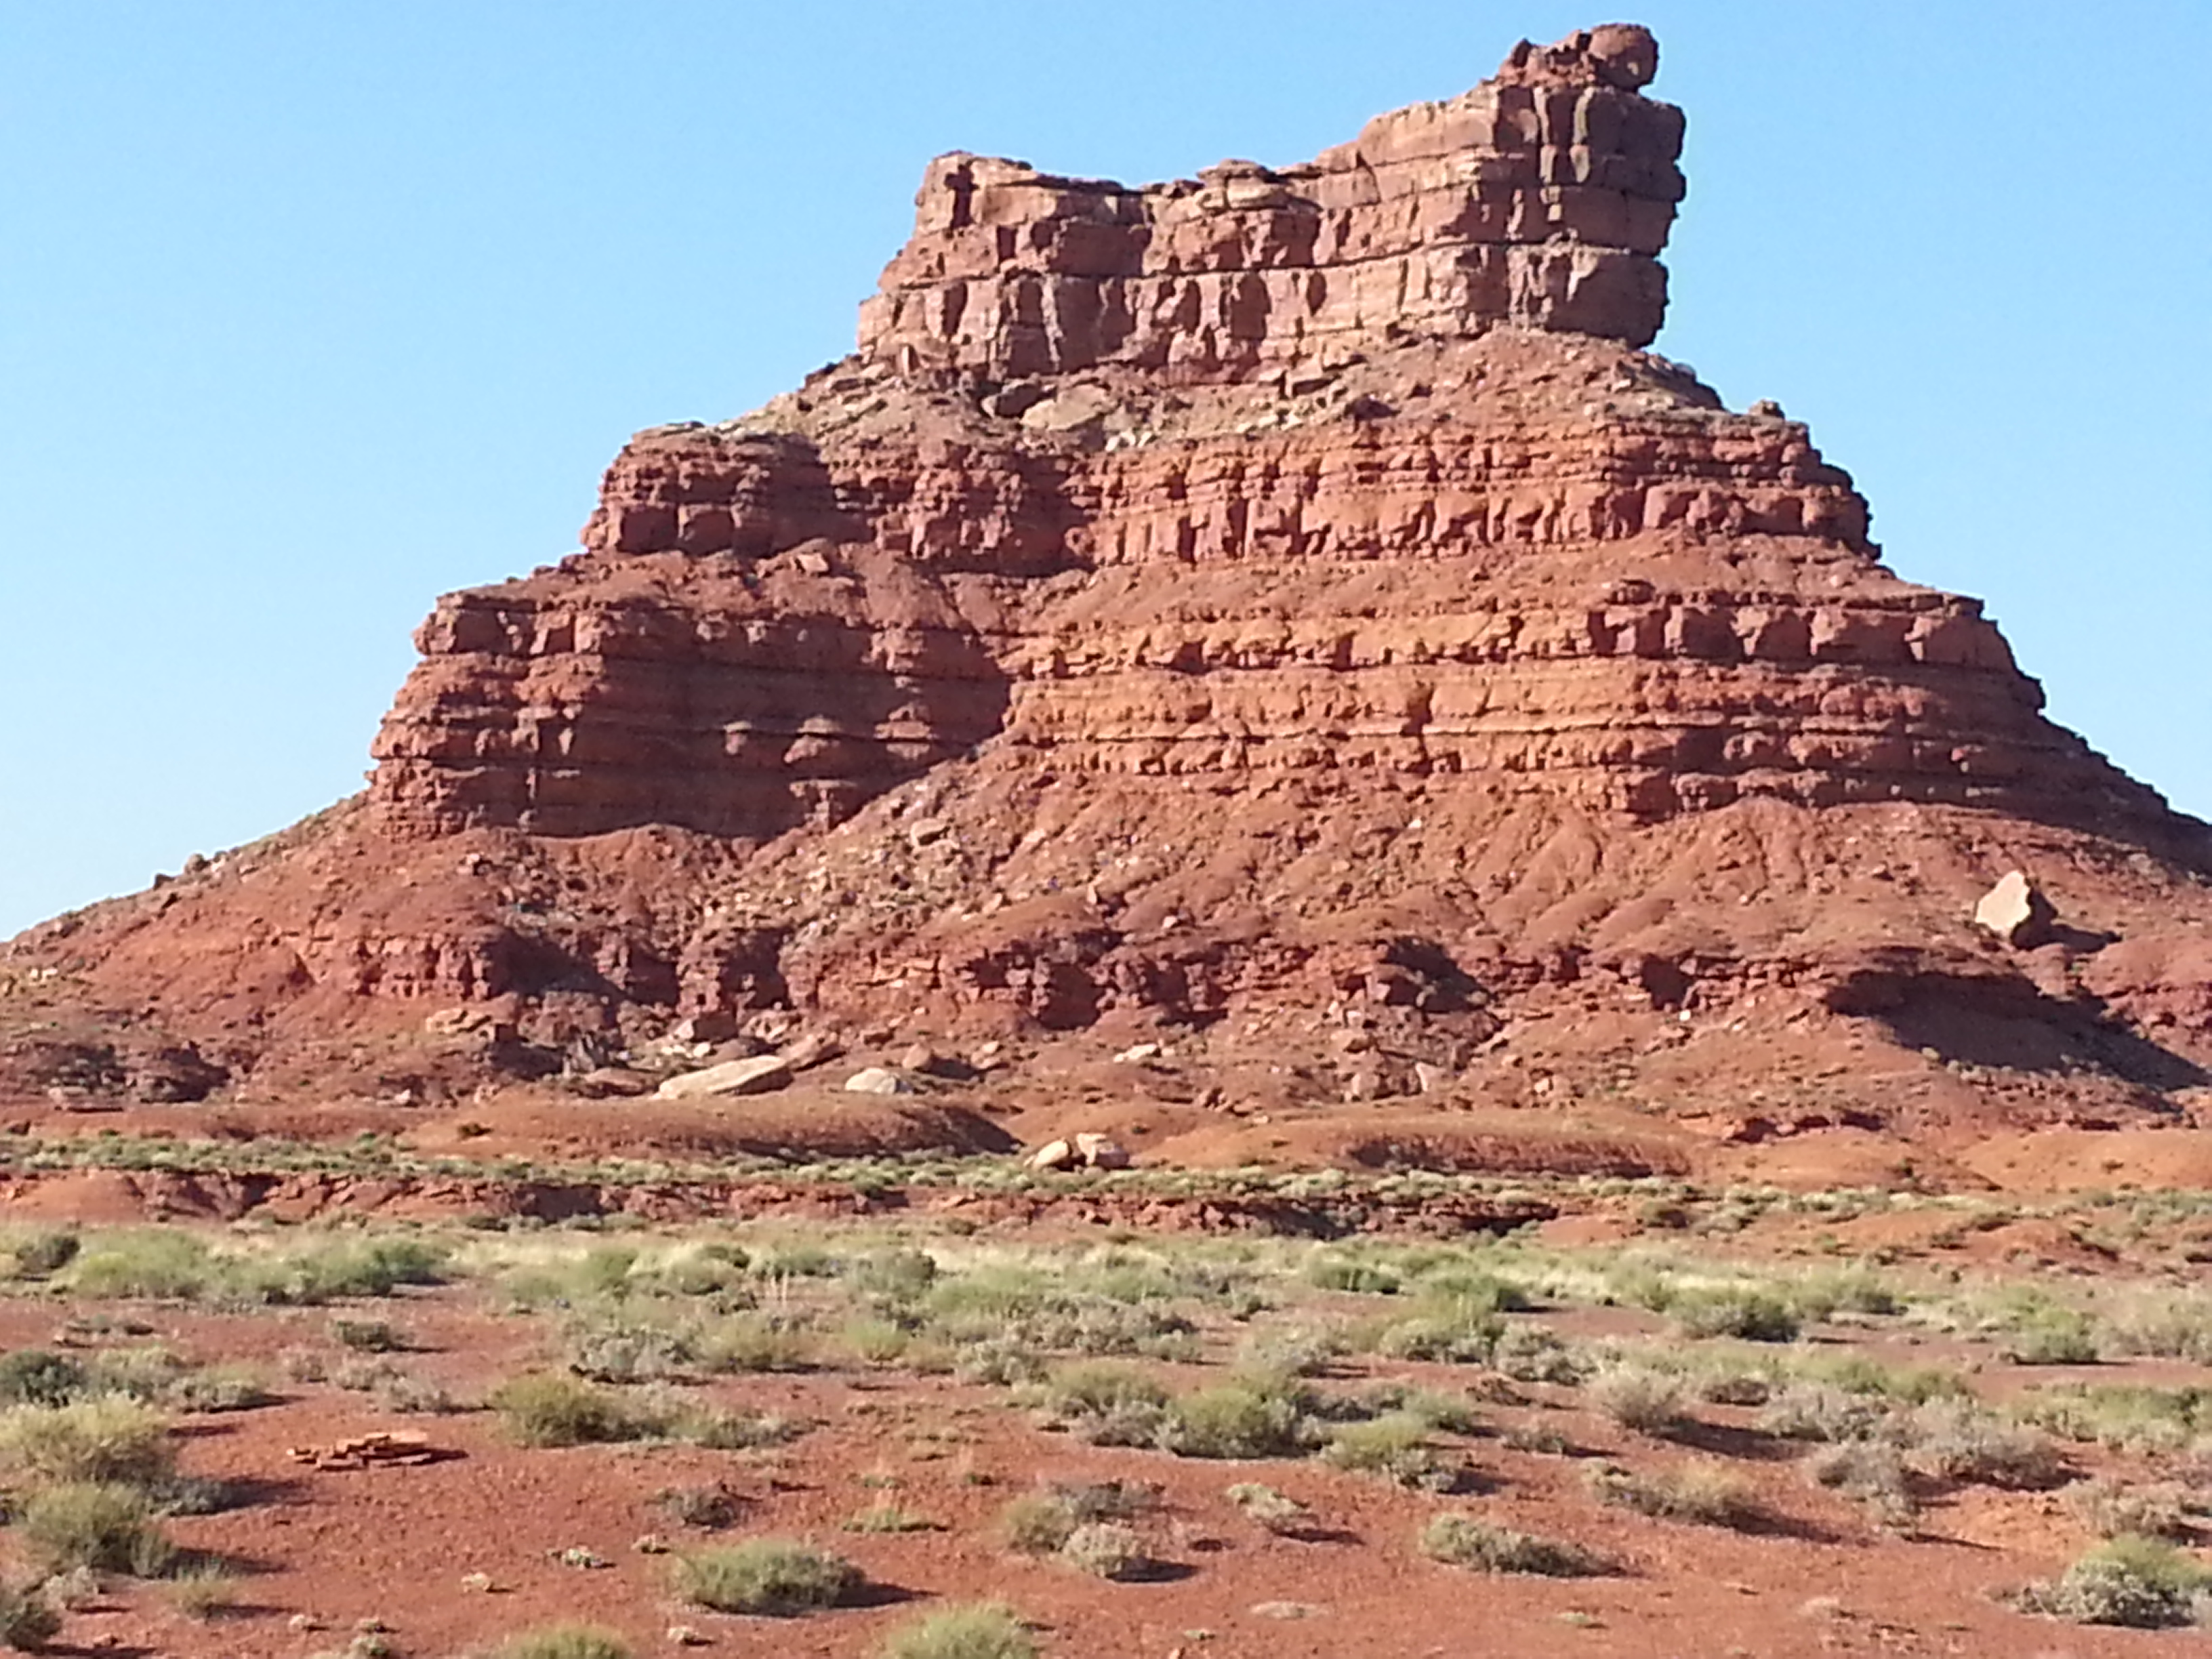 Wonderful rock formations in Utah - called Hoodoos.